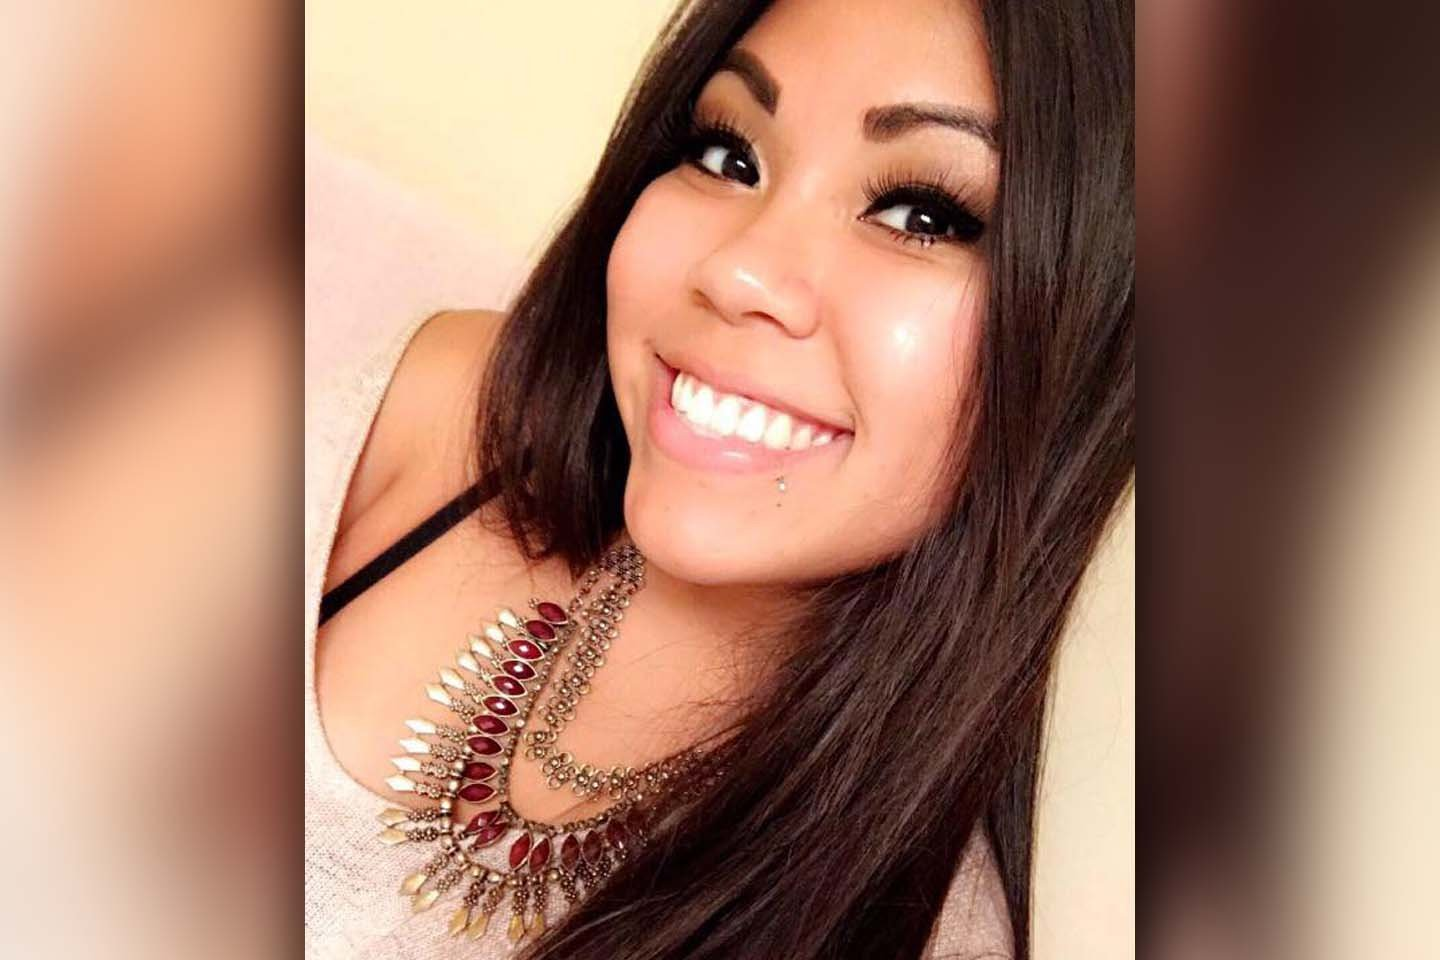 Woman killed in I-8 crash identified as SDSU student